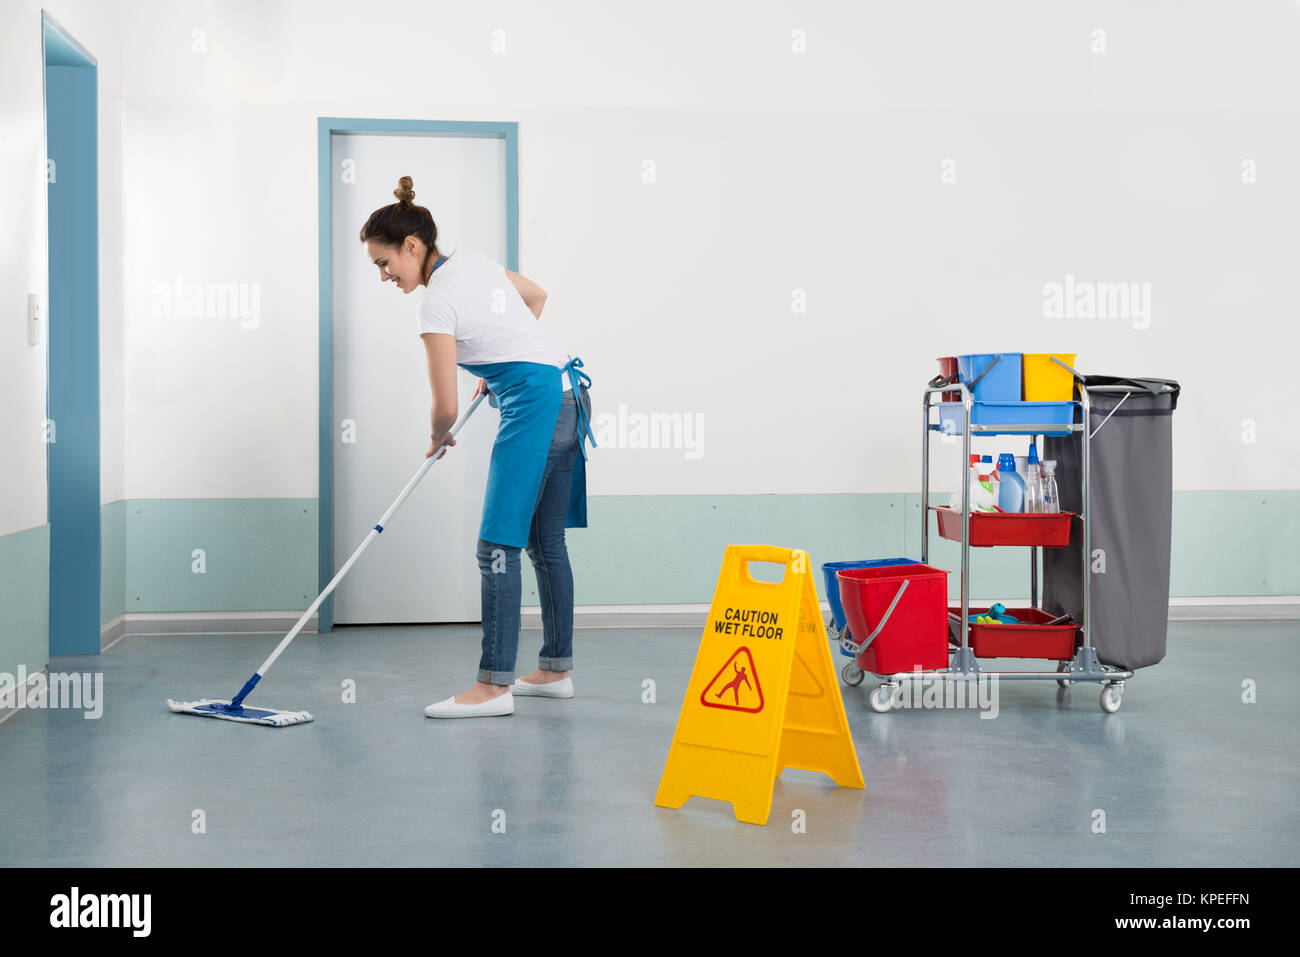 Female Janitor Mopping Corridor - Stock Image